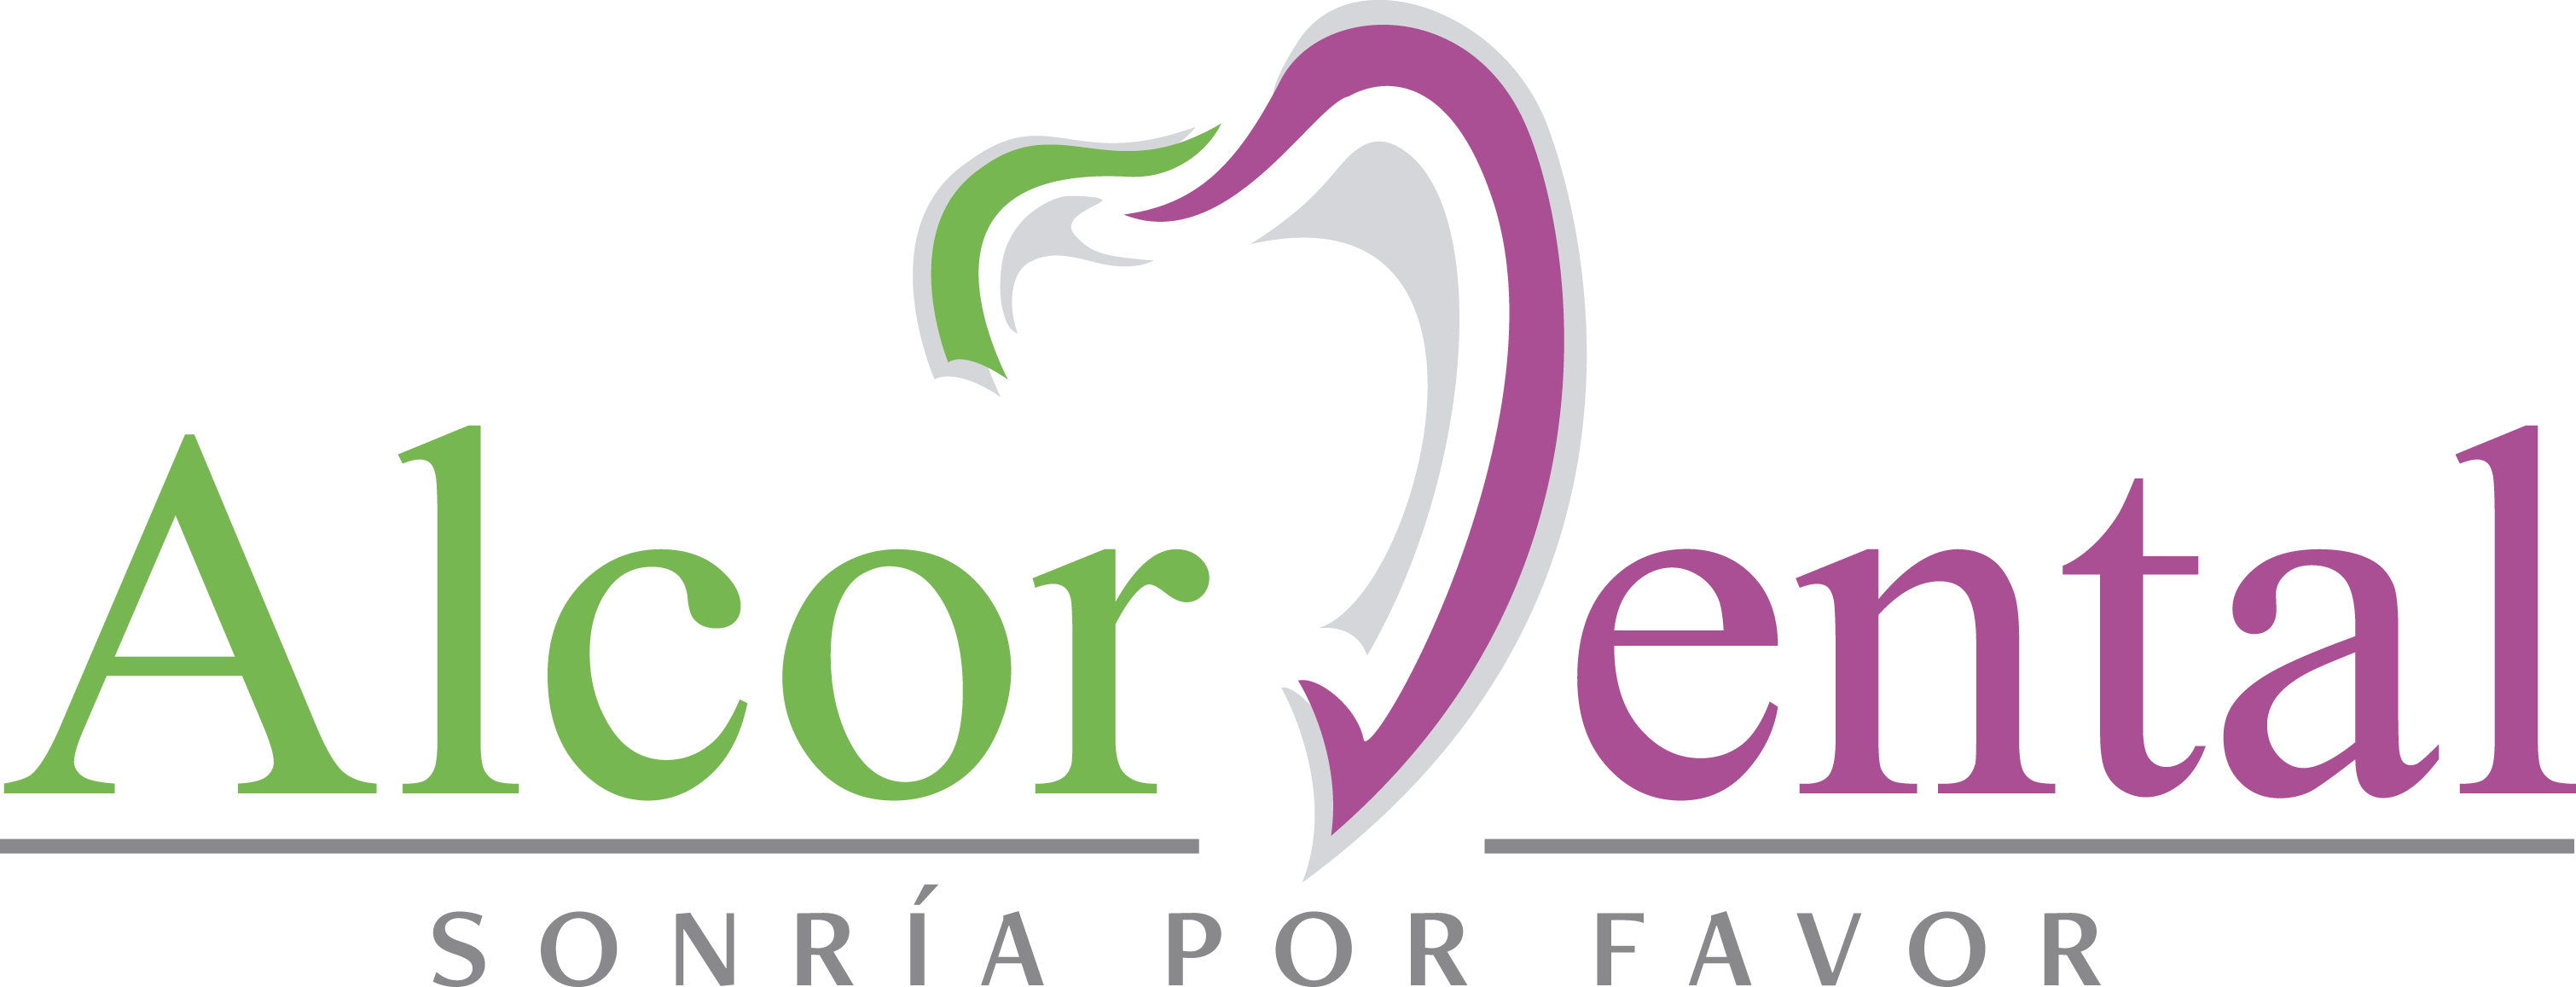 Alcordental - Tu Clínica Dental en Alcorcón - Madrid